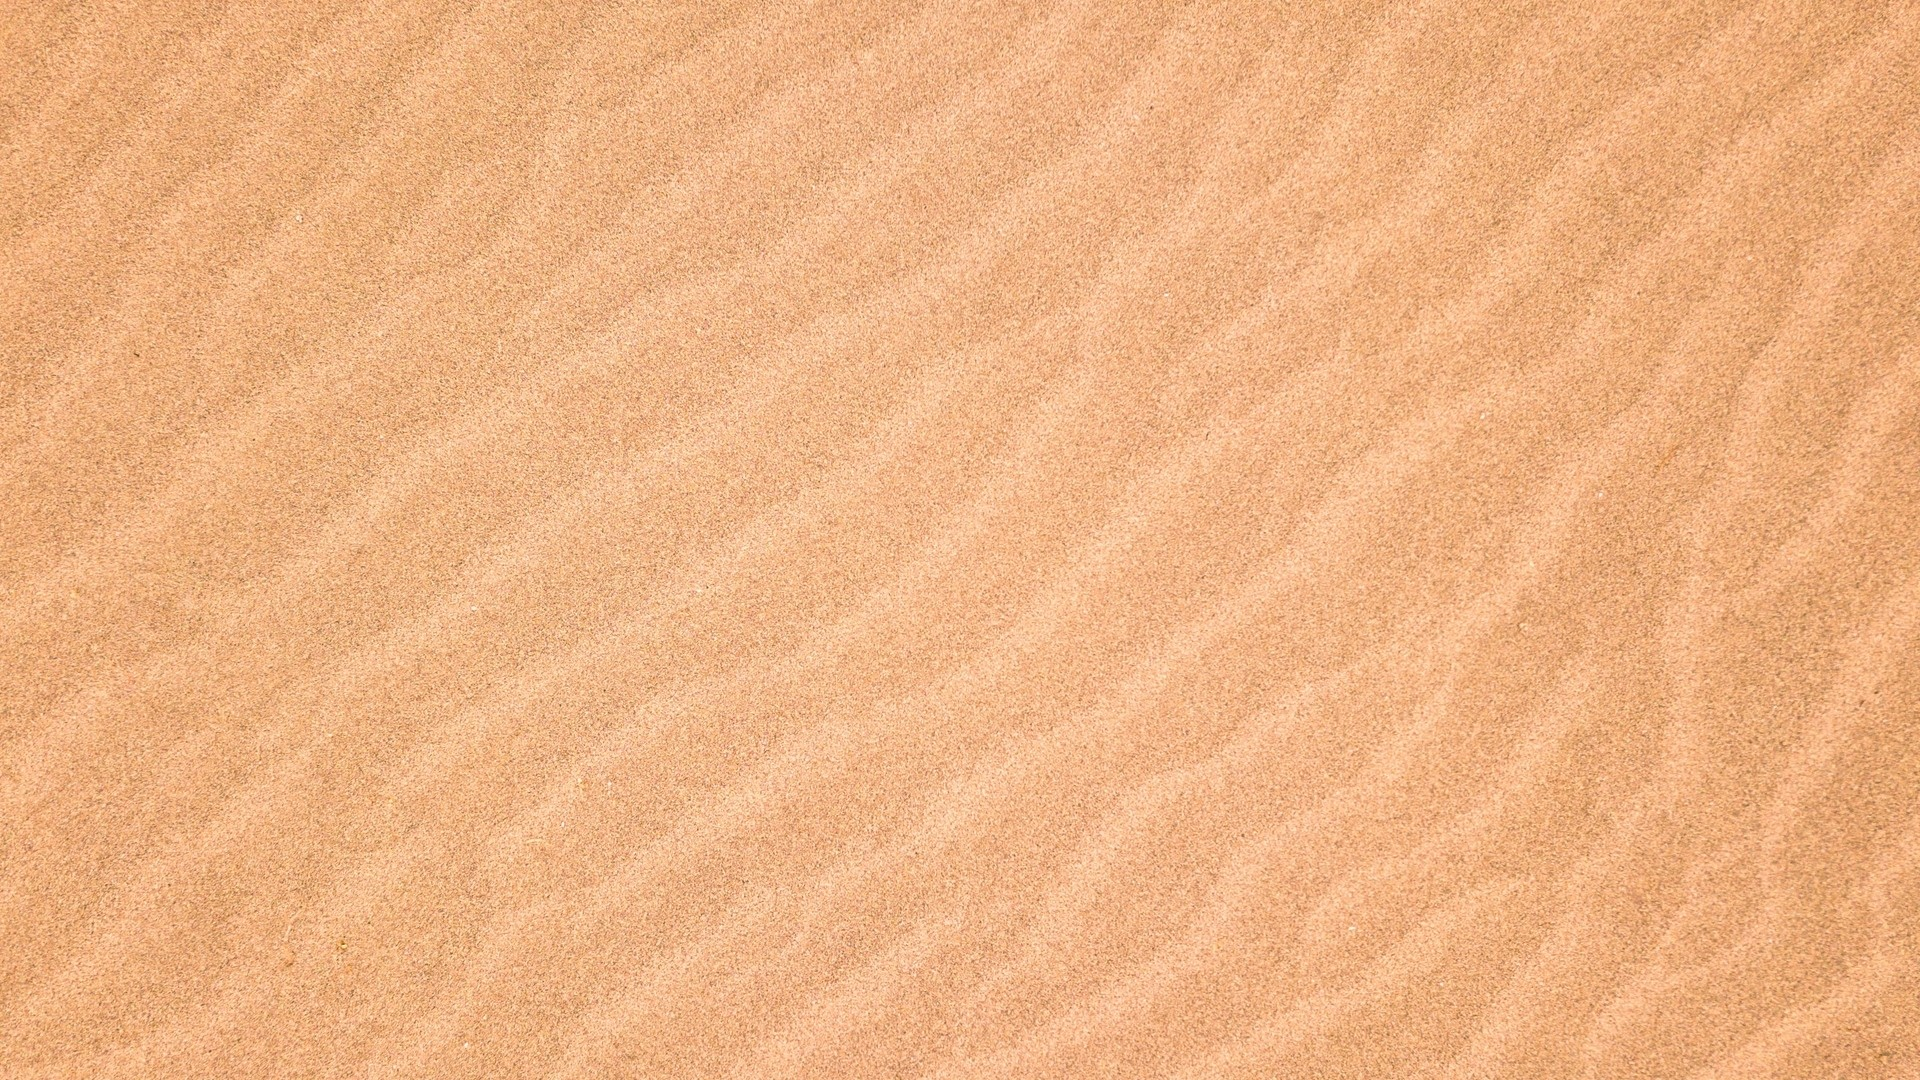 Sand Free Wallpaper and Background